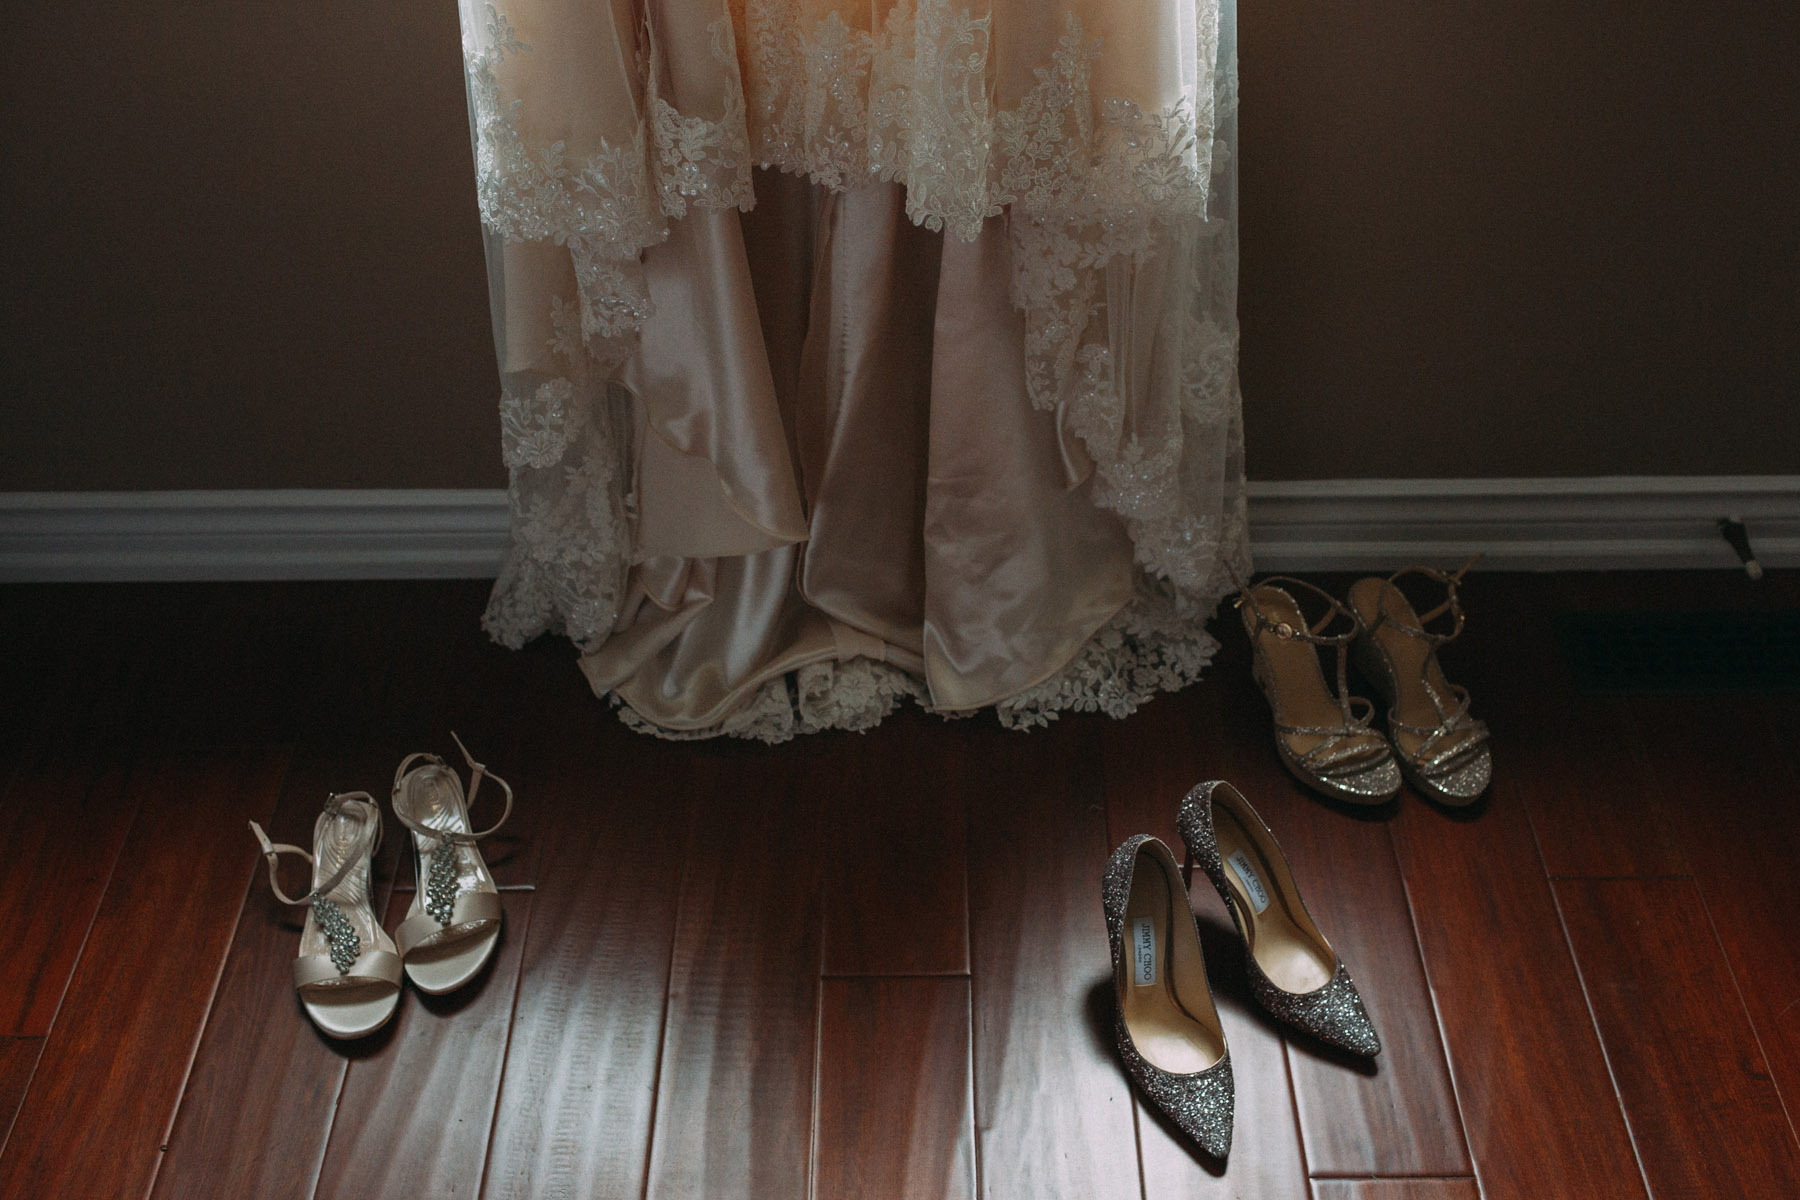 Harding-Waterfront-Estate-Mississauga-wedding-photography-by-Sam-Wong-of-Artanis-Collective_03.jpg